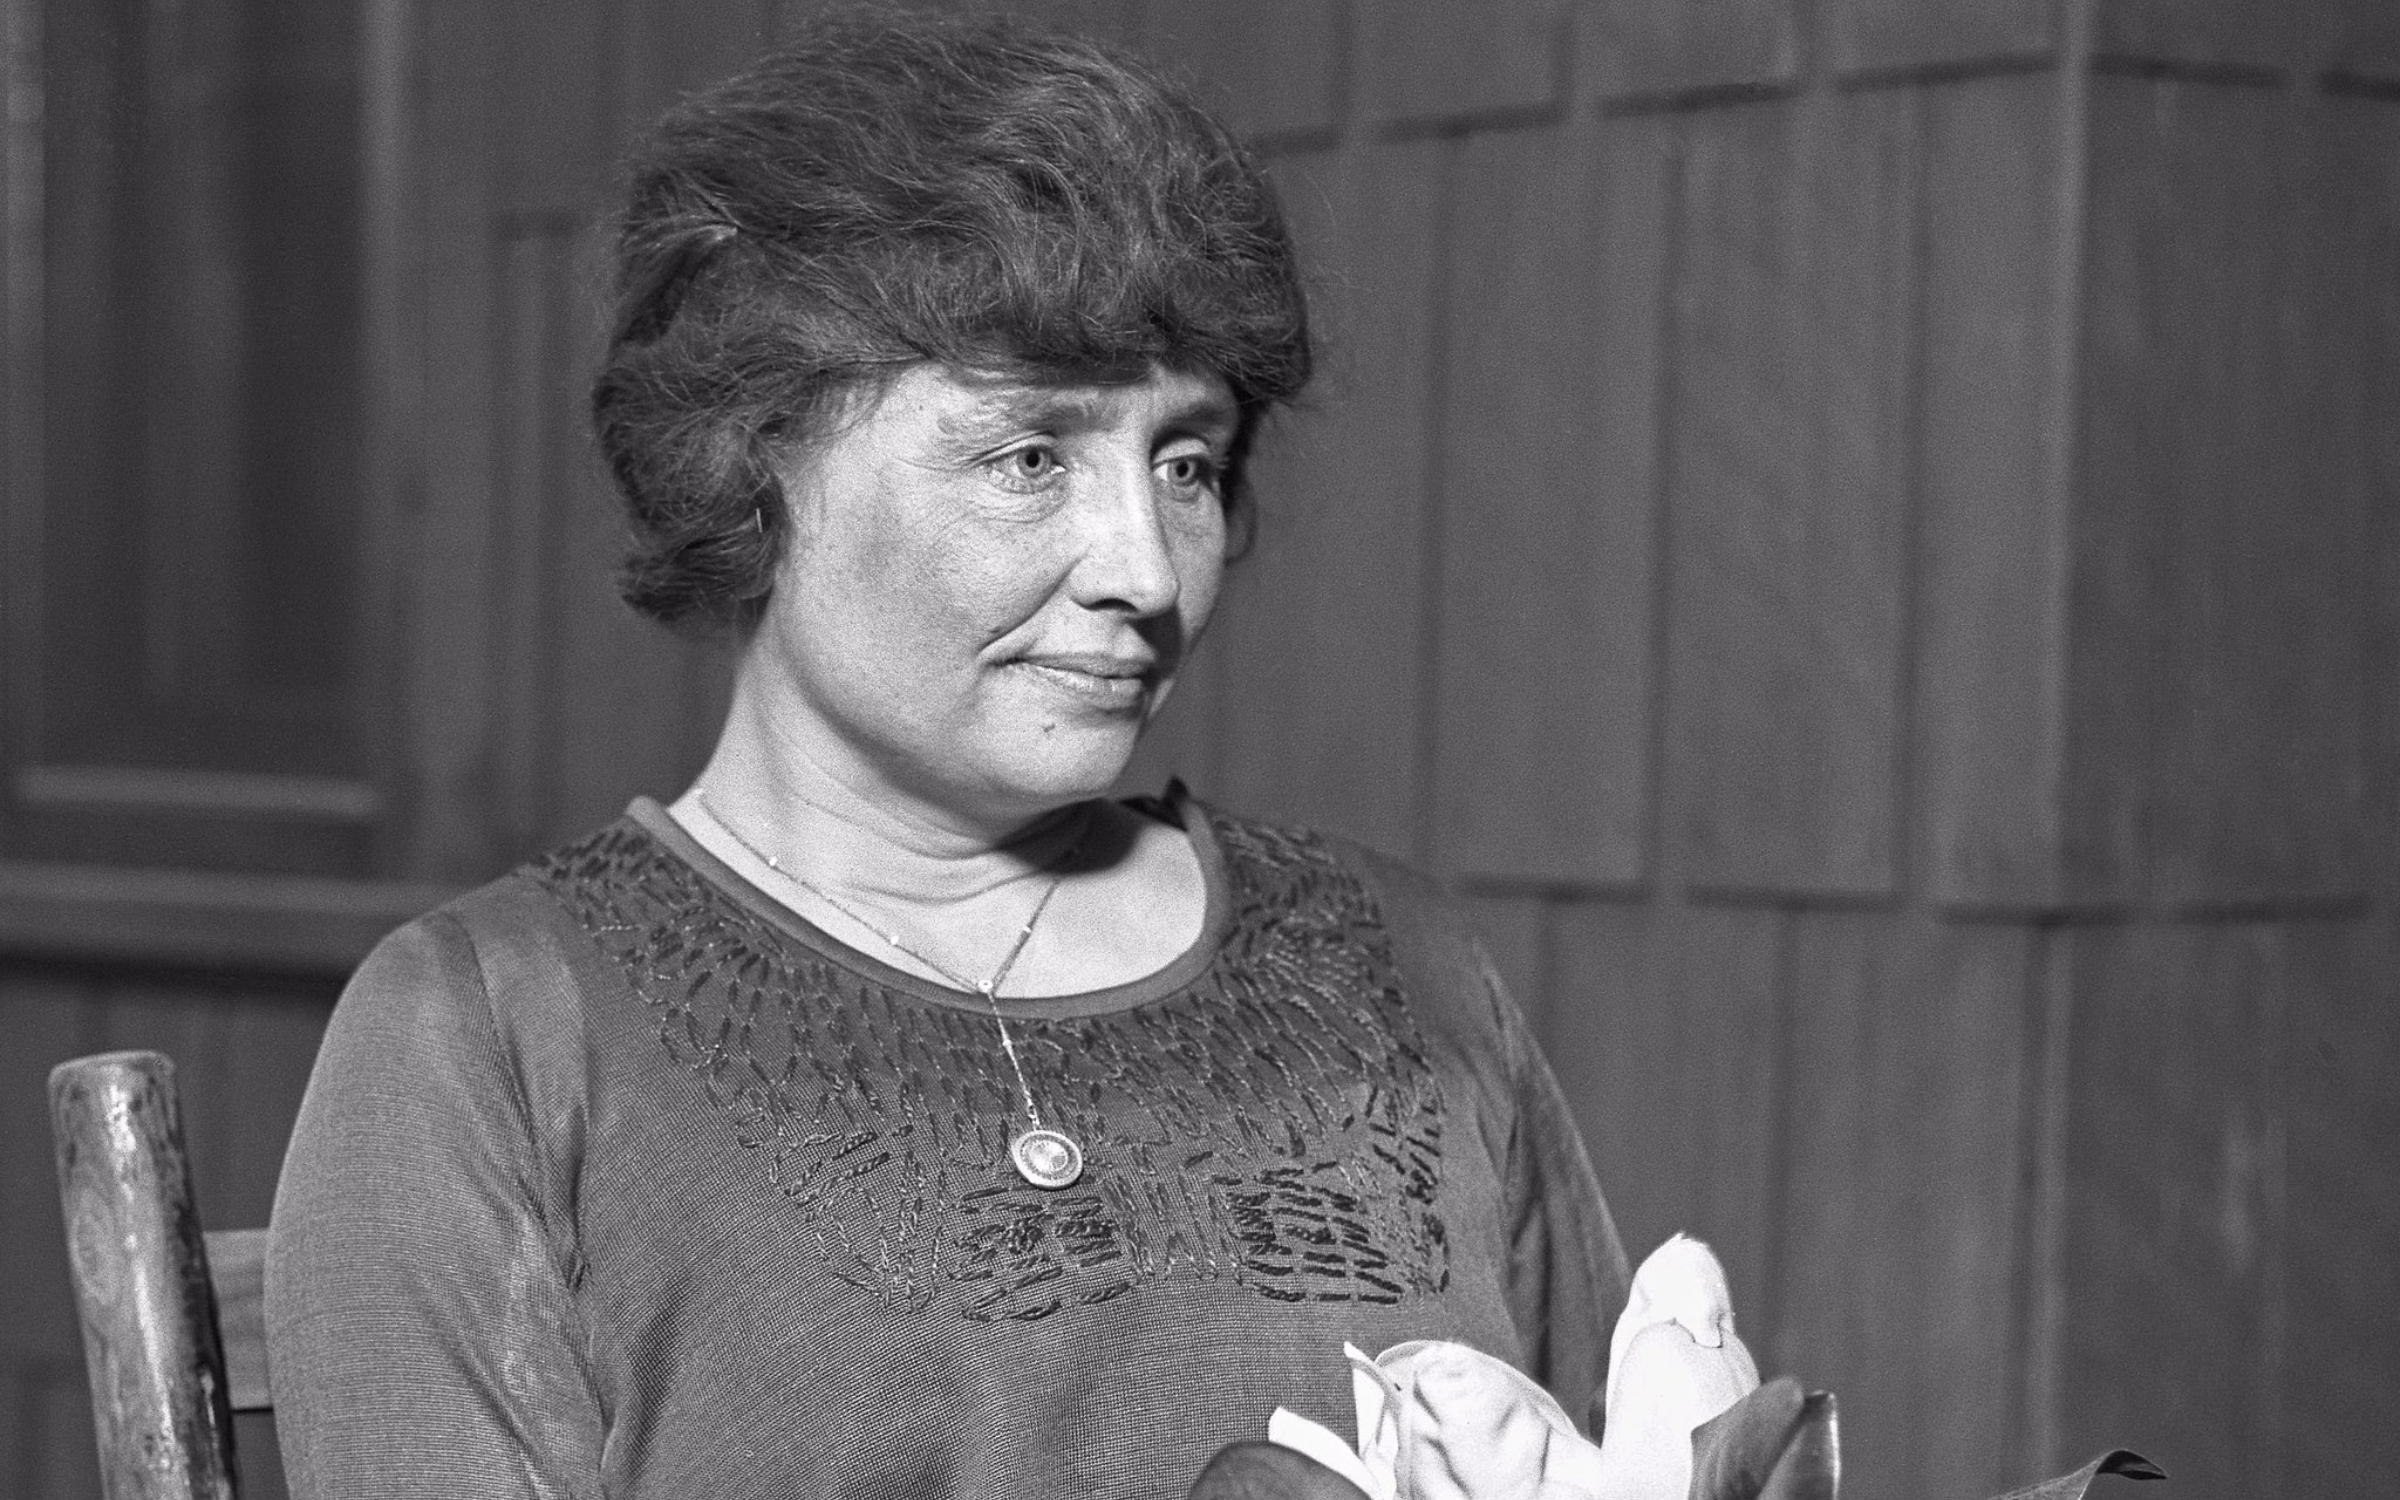 Helen Keller, a white woman, sits while holding a flower. Her hair is dark and sits on her head in a bun. The photo is in black and white.